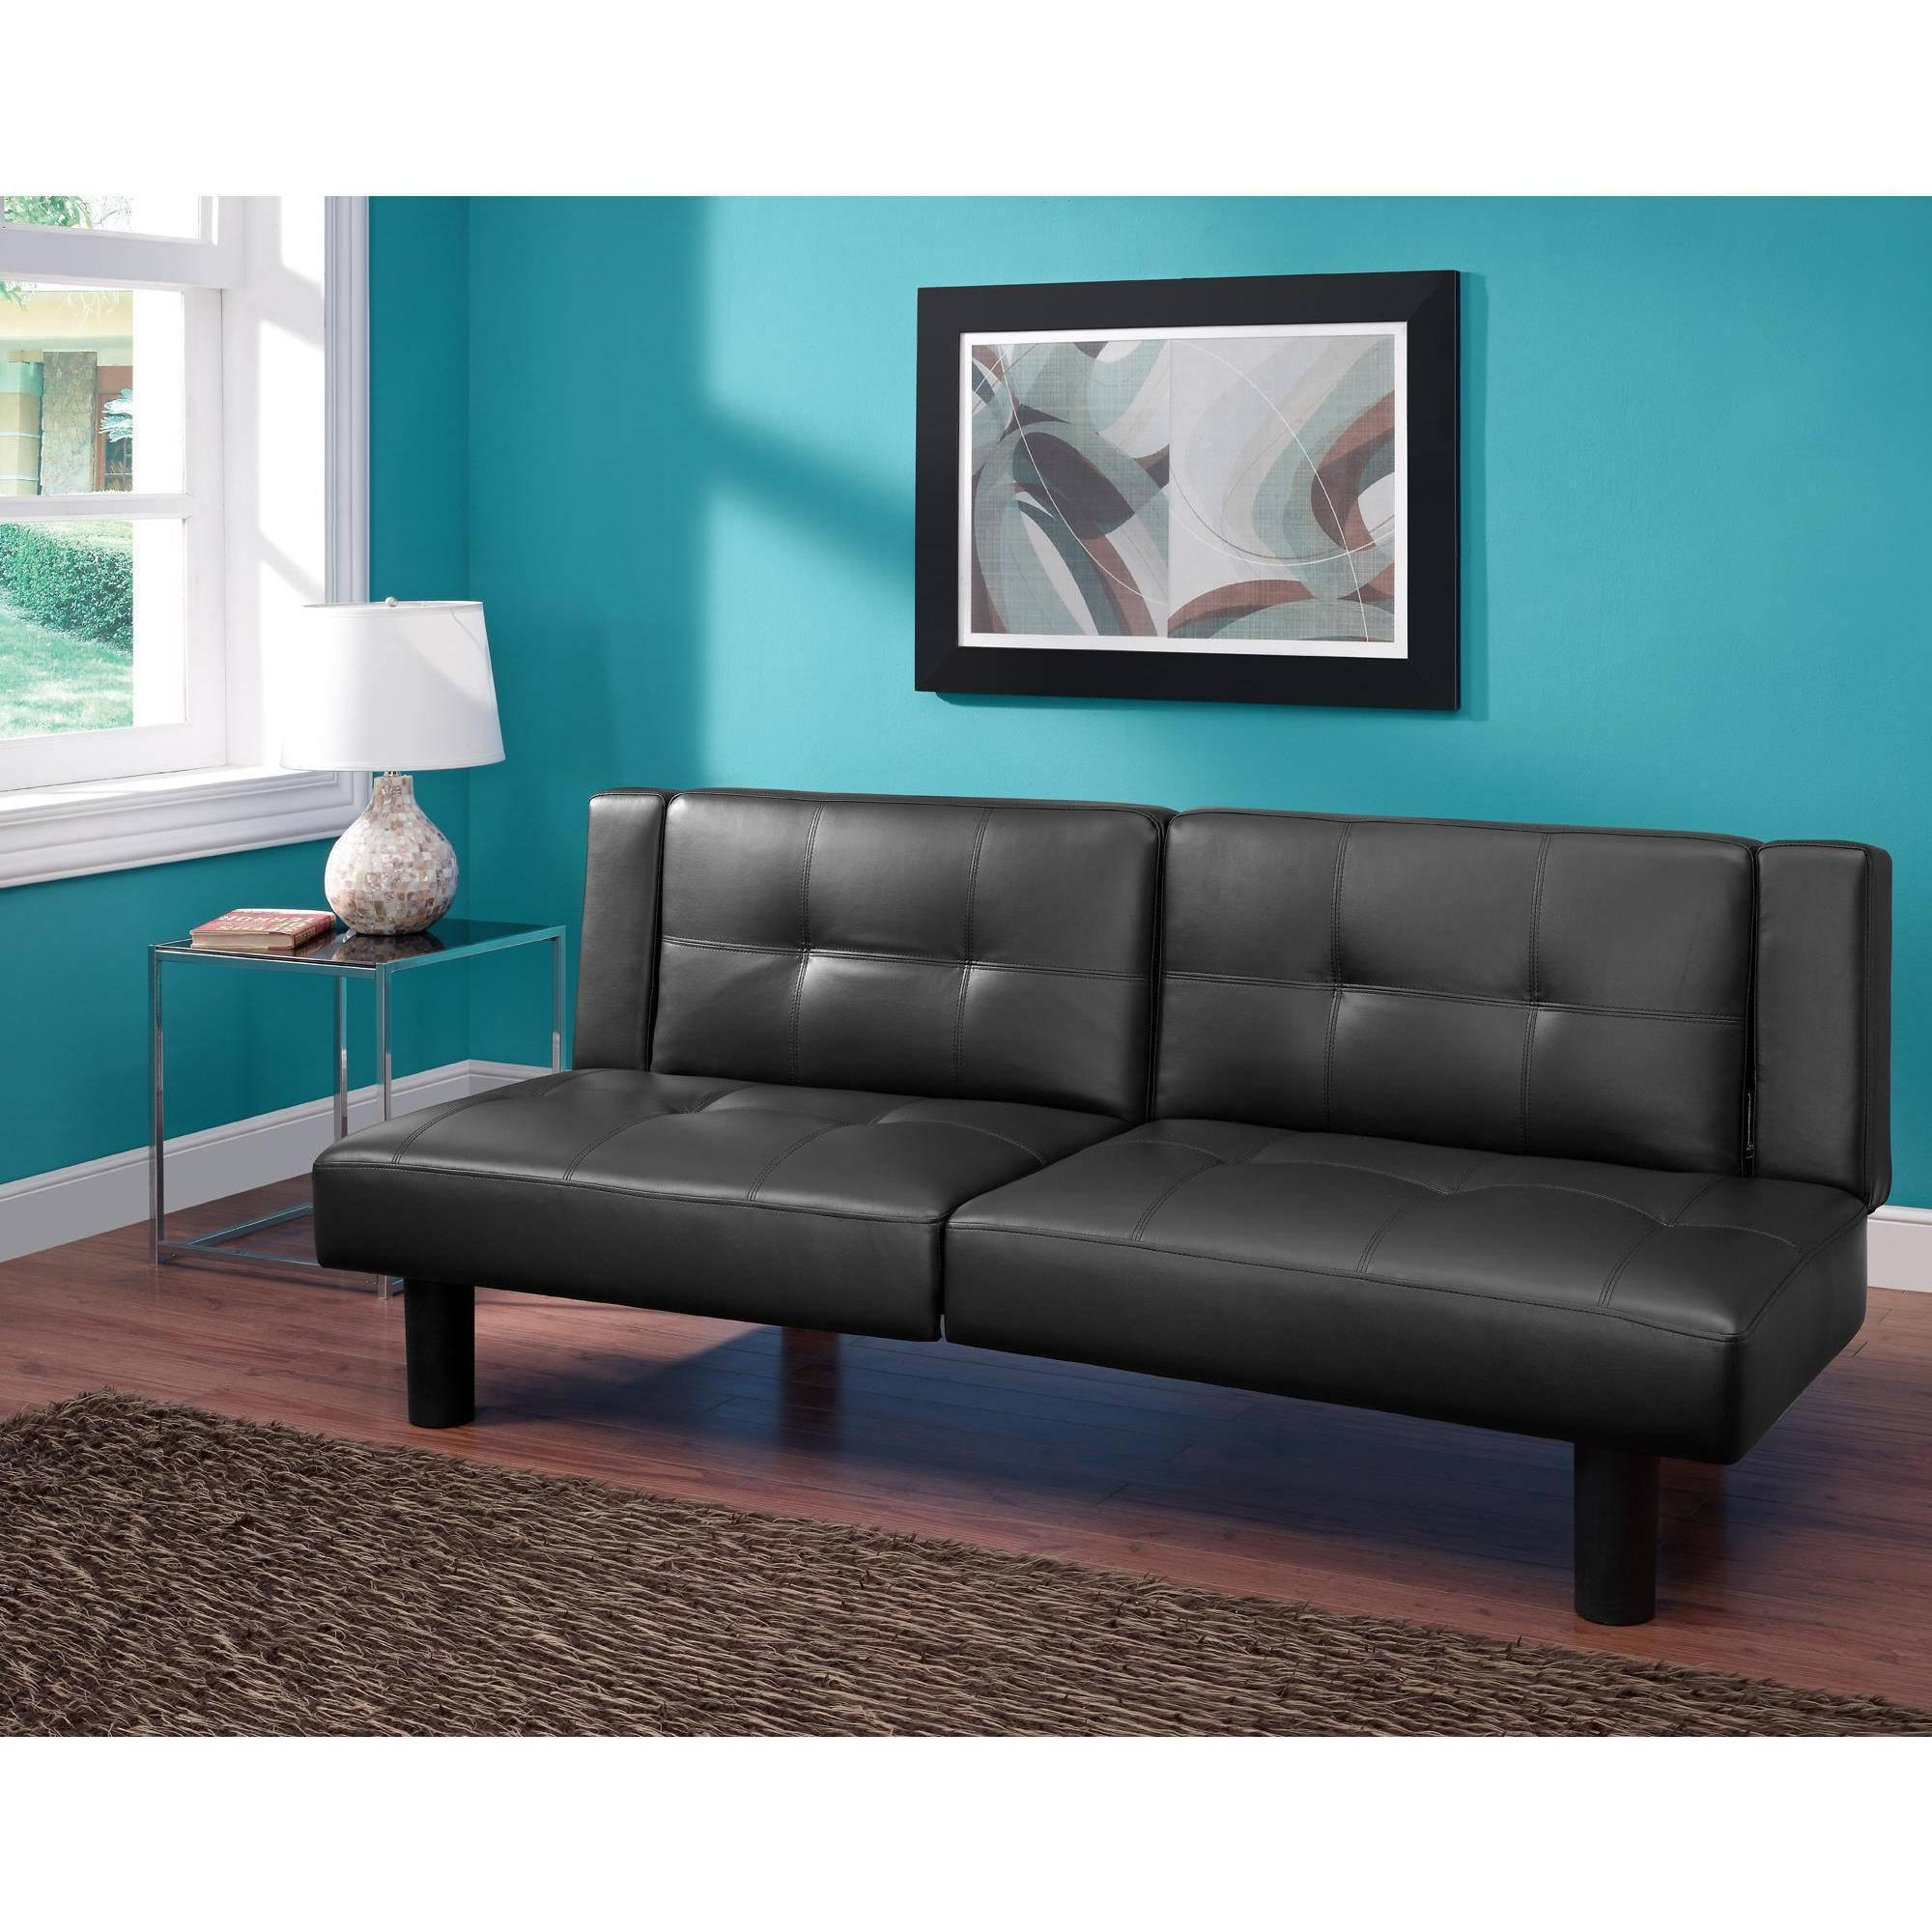 Mainstays Connectrix Faux Leather Futon, Multiple Colors – Walmart Throughout Mainstay Sofas (Image 11 of 20)